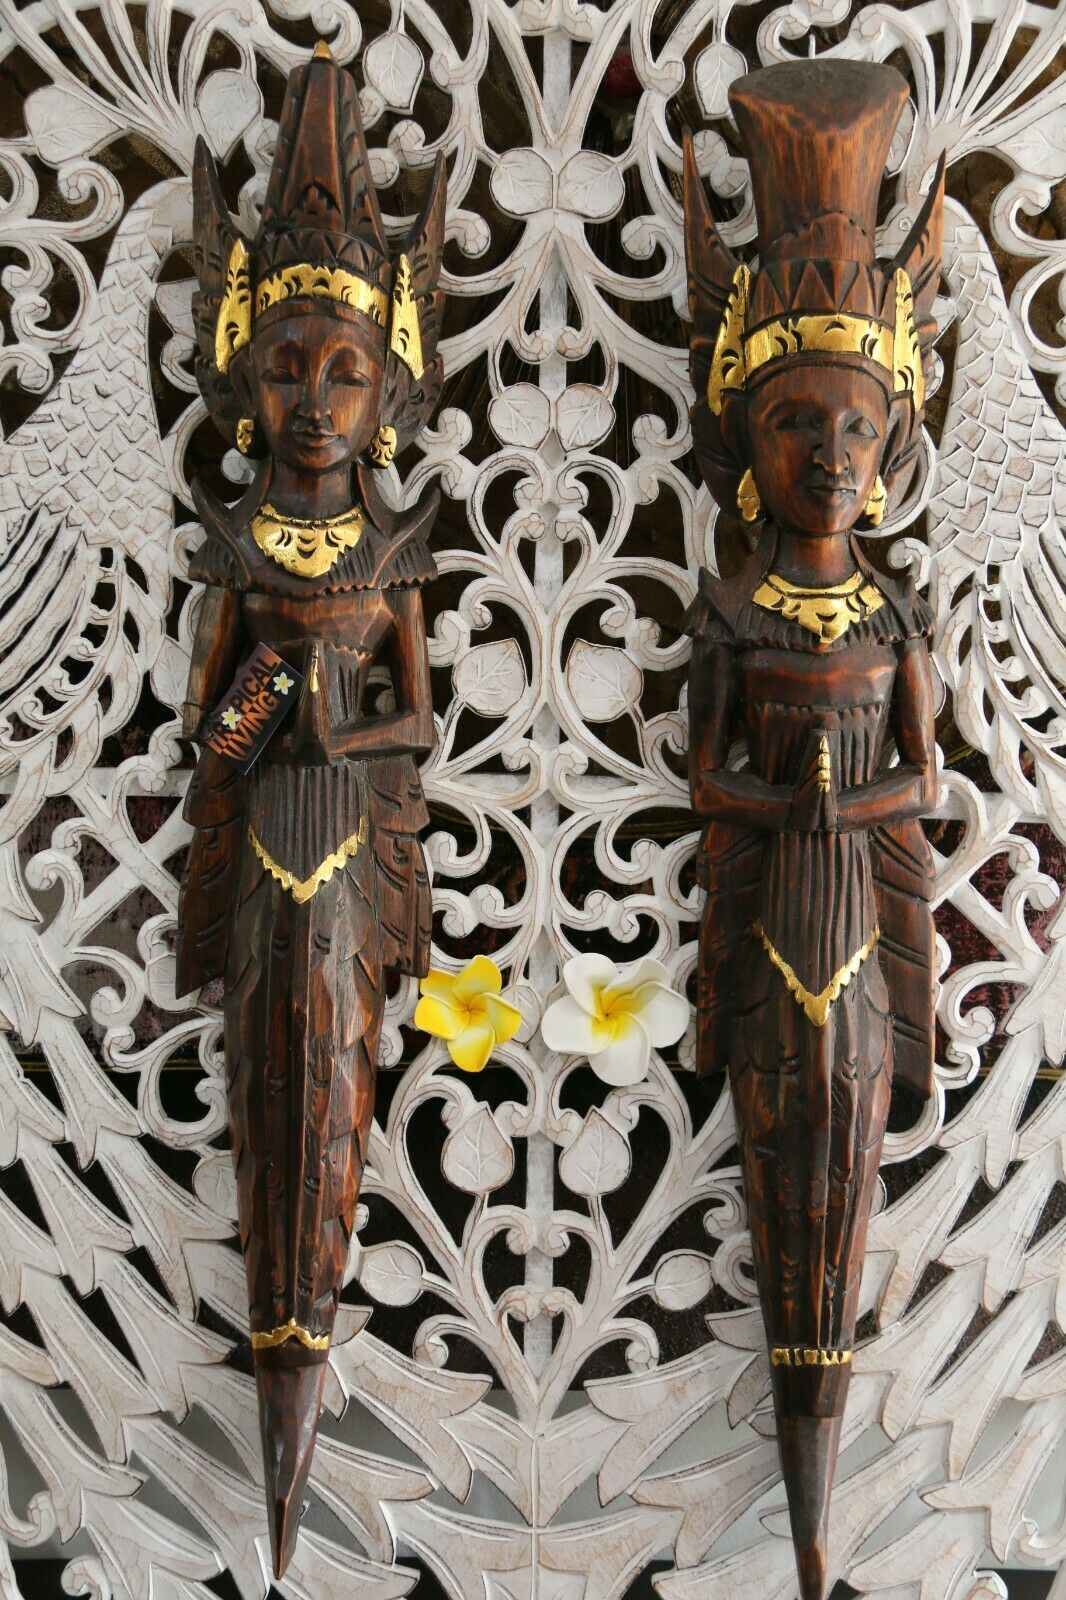 NEW Balinese Hindu Rama & Shinta Wood Carved Wall Sculptures - BALI Wall Art